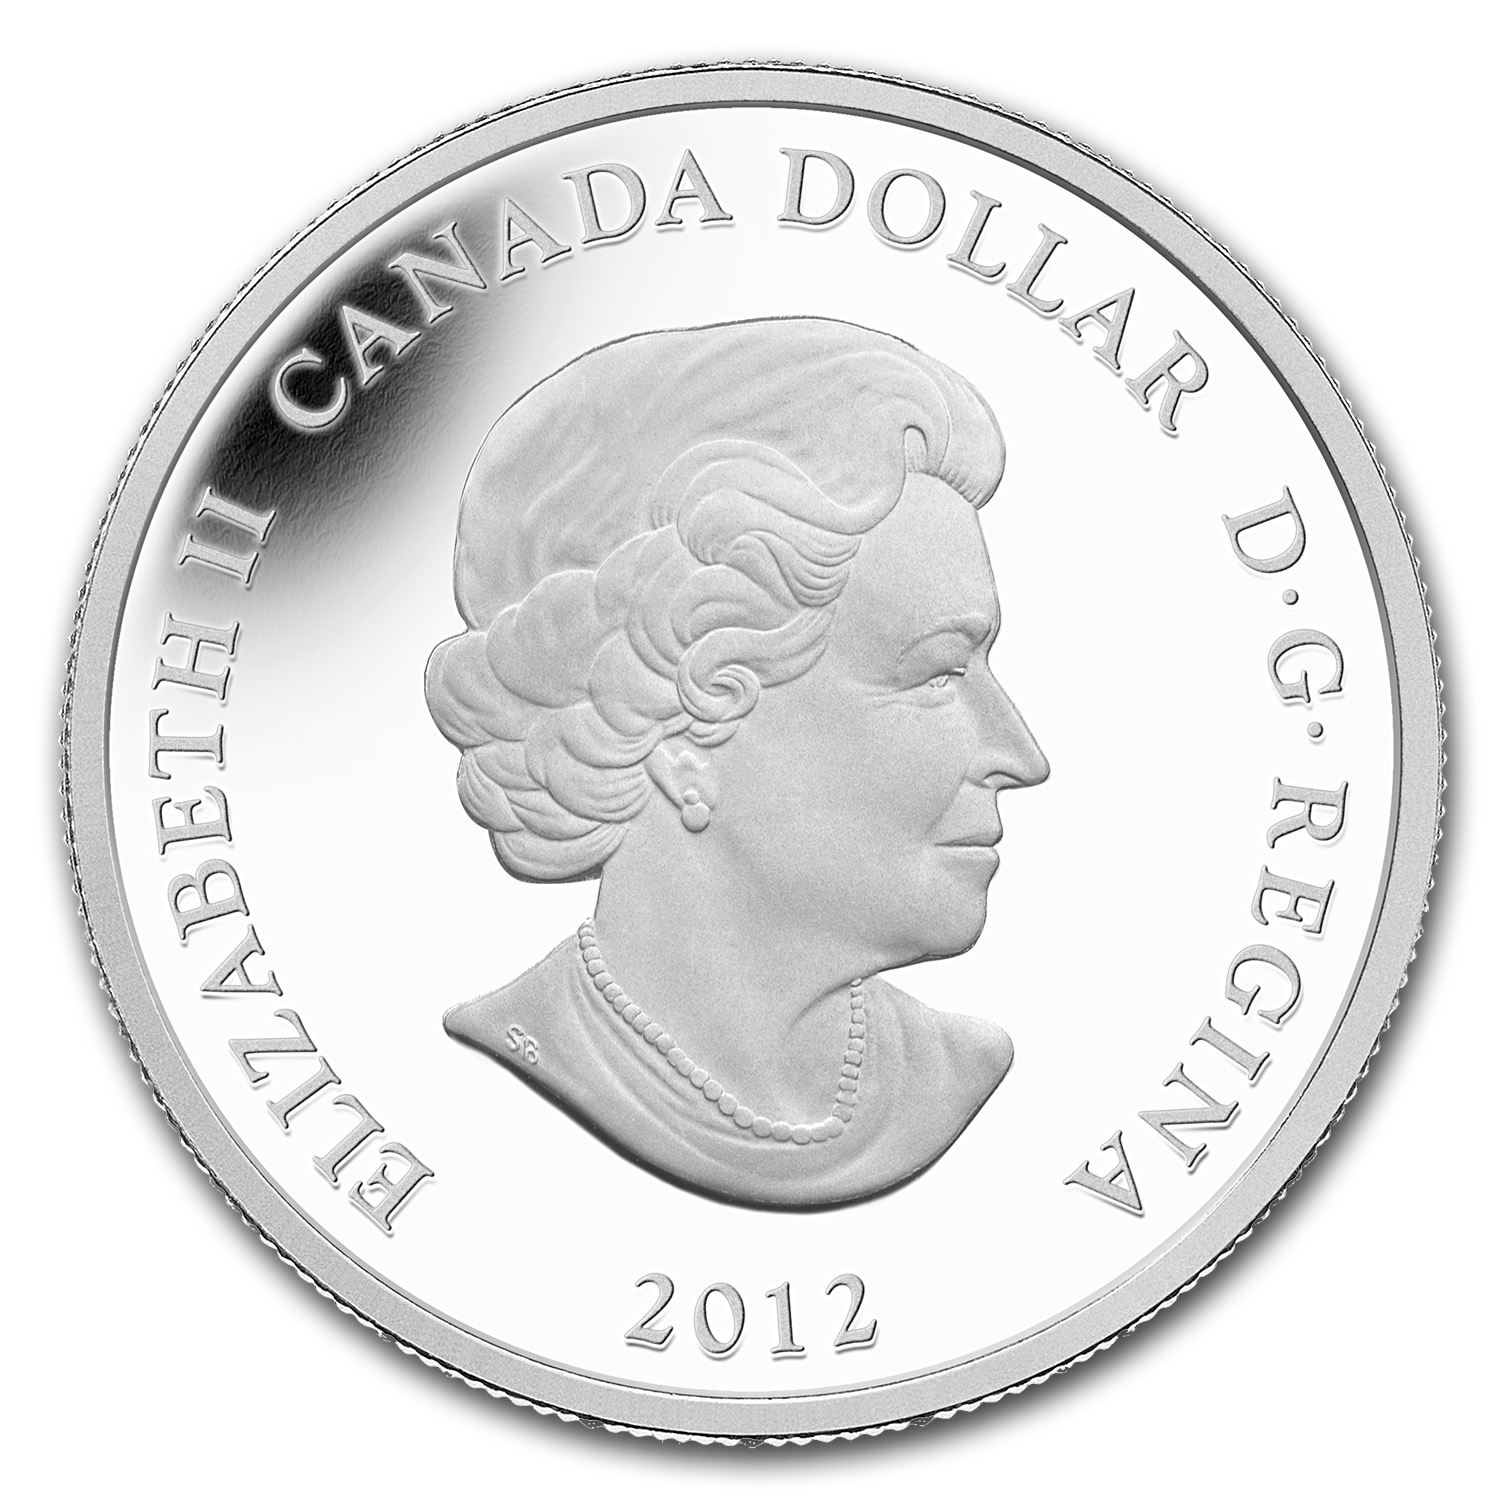 2012 Canada 1 oz Silver $1 Two Loons Artistic Loonie (Painted)